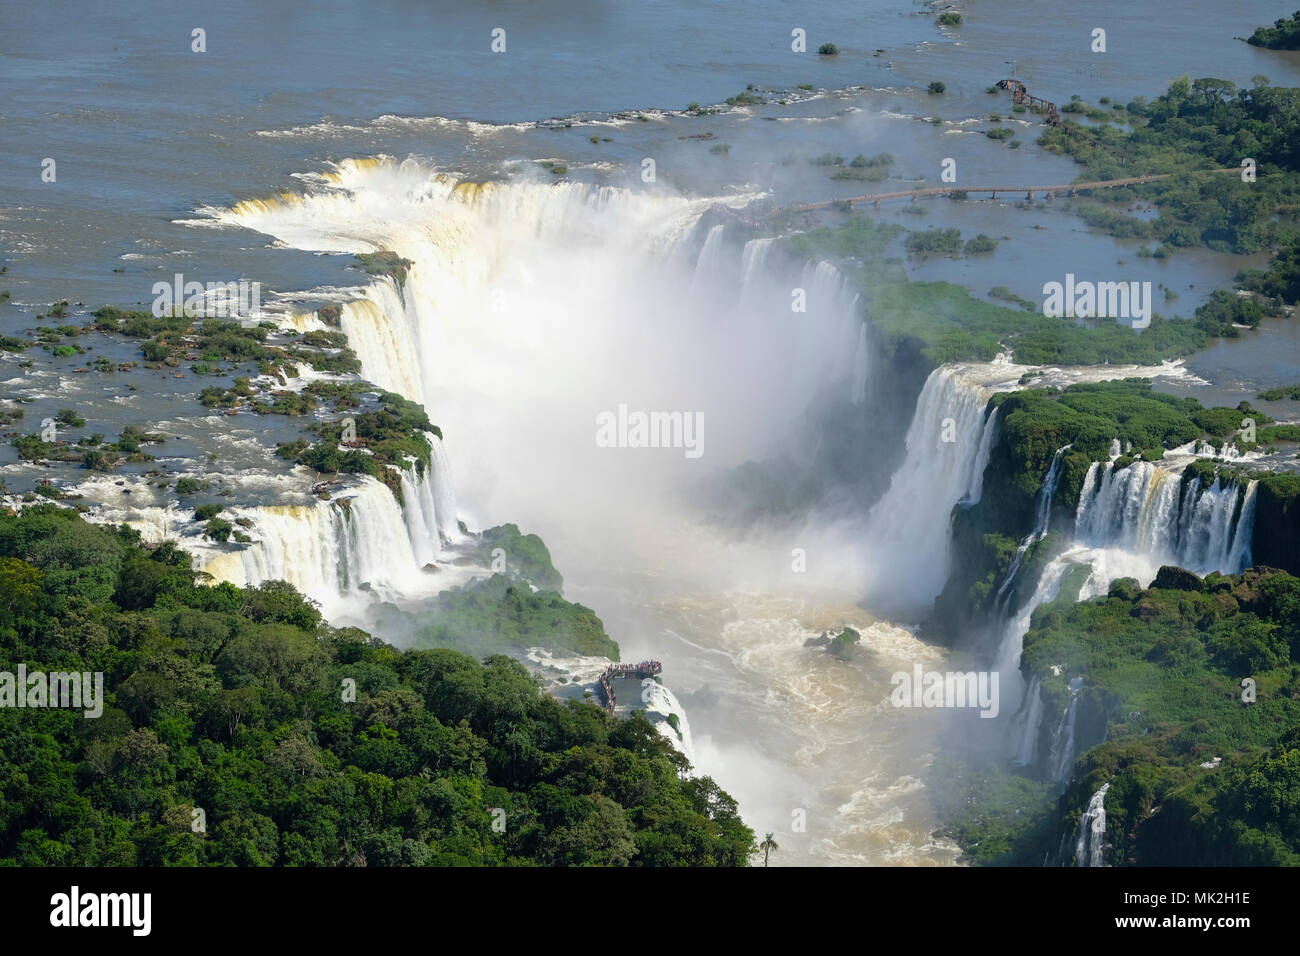 Aerial view of the Devil's Throat or Garganta del Diablo at Iguassu (Iguacu / Iguazu) falls on the border of Argentina and Brazil - Stock Image